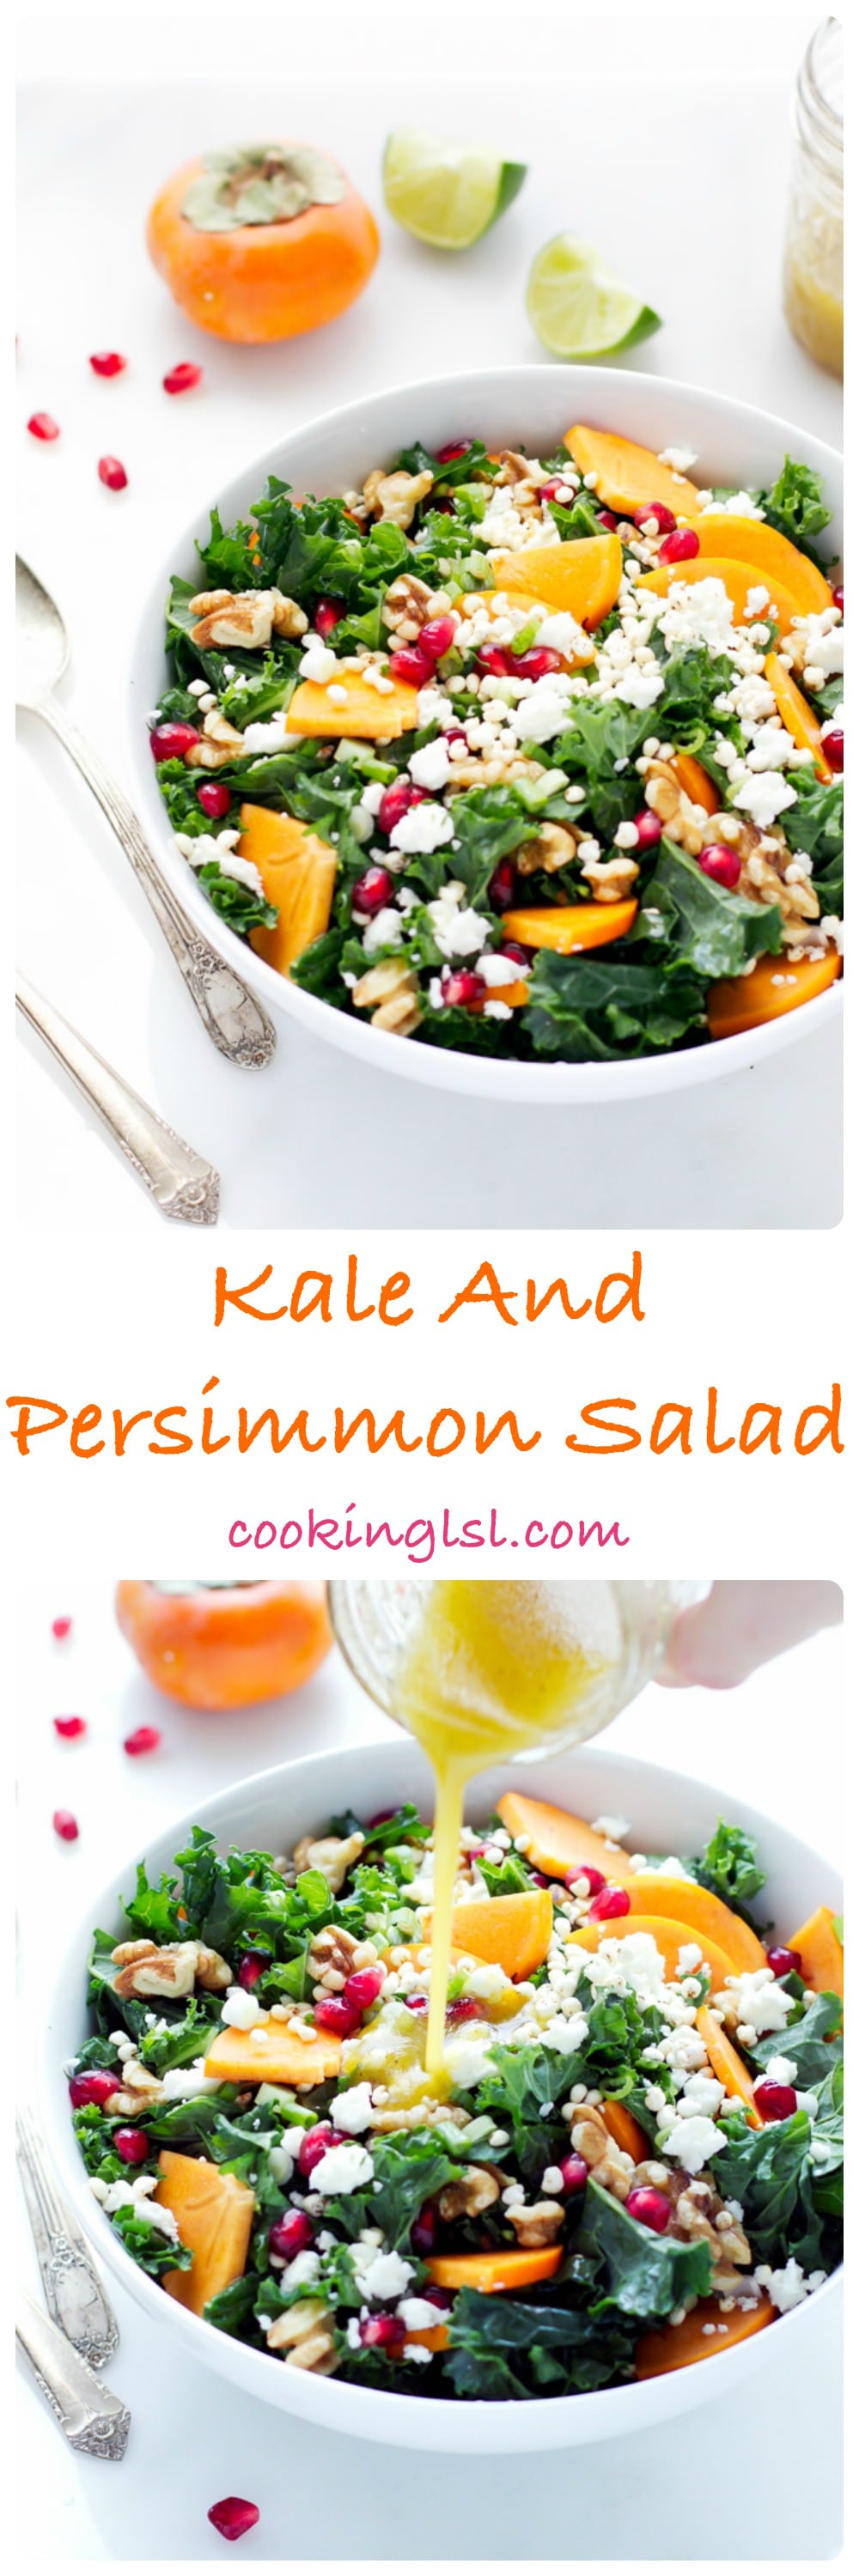 A bowl with kale persimmon salad, made with walnuts, feta, millet and pomegranate. Lime dressing poured on top from a jar.